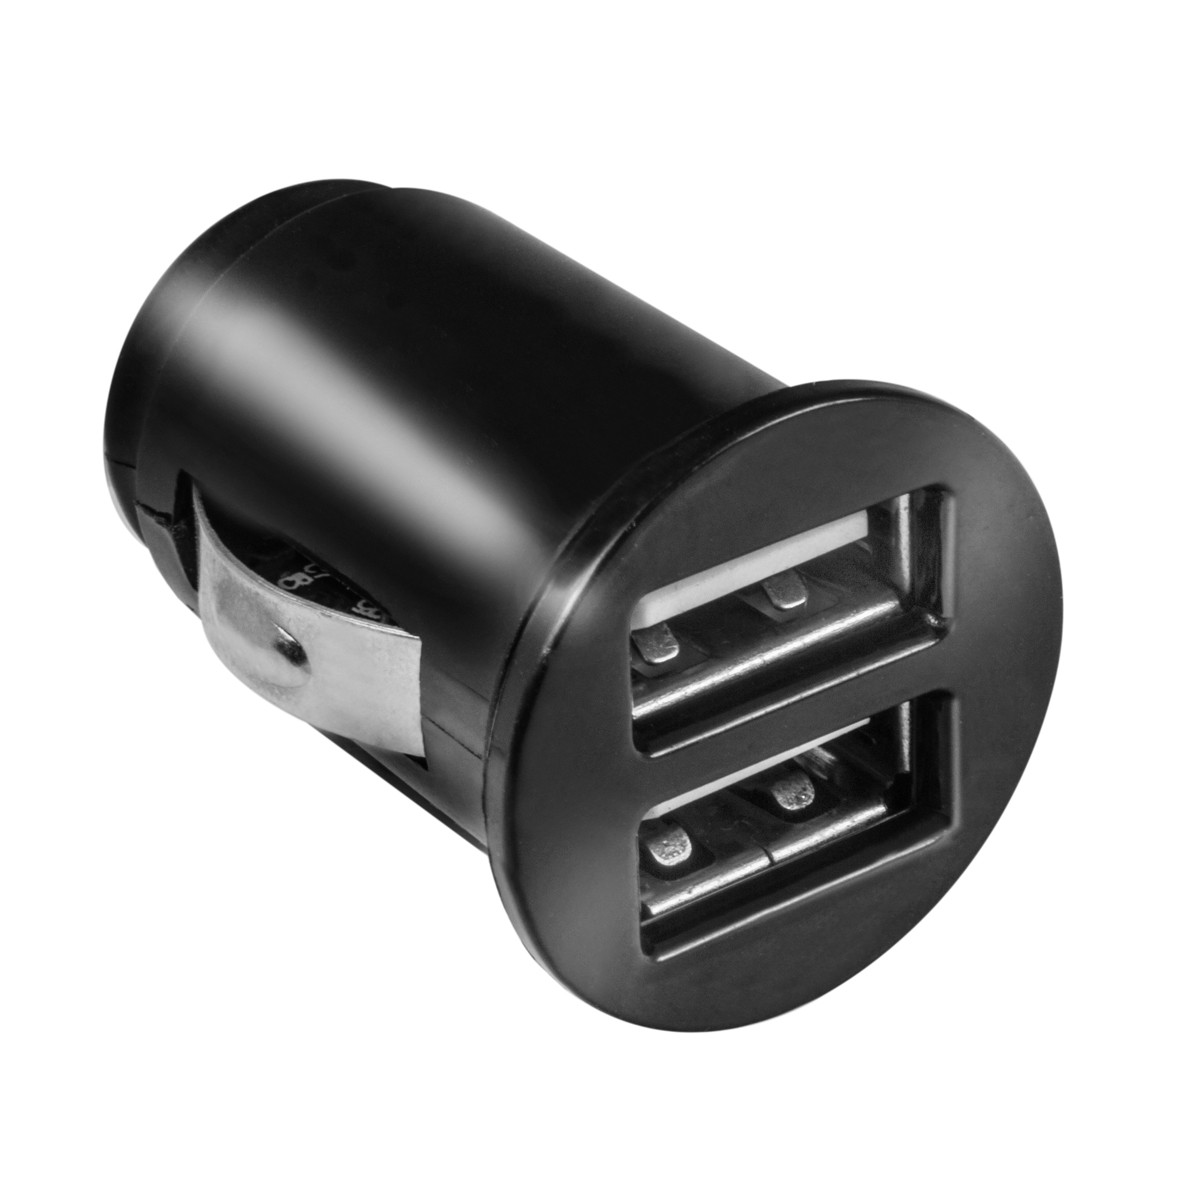 dual usb kfz mini adapter 2 usb ports mit bis zu 2100ma. Black Bedroom Furniture Sets. Home Design Ideas